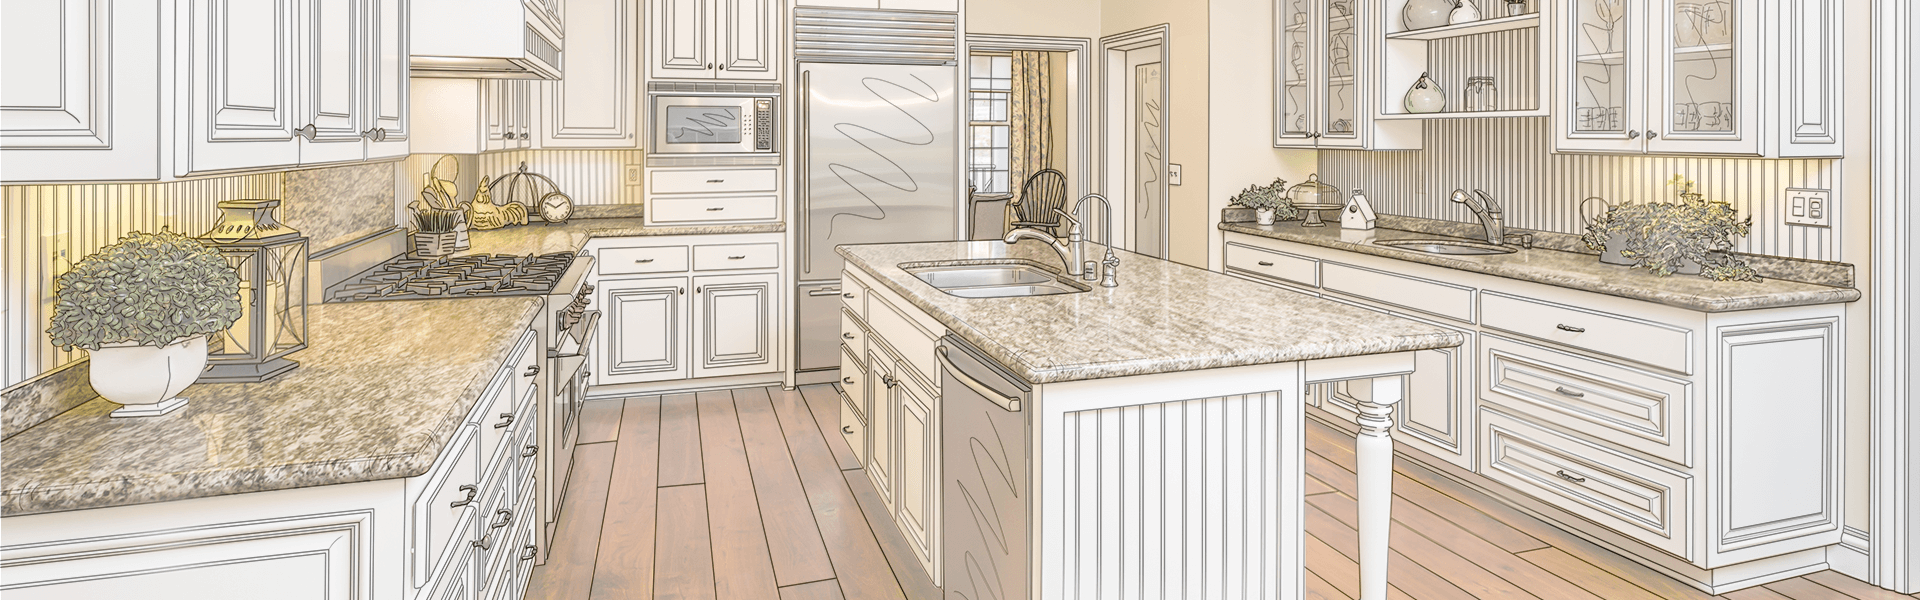 Custom cabinet drawing by Cabinet Depot